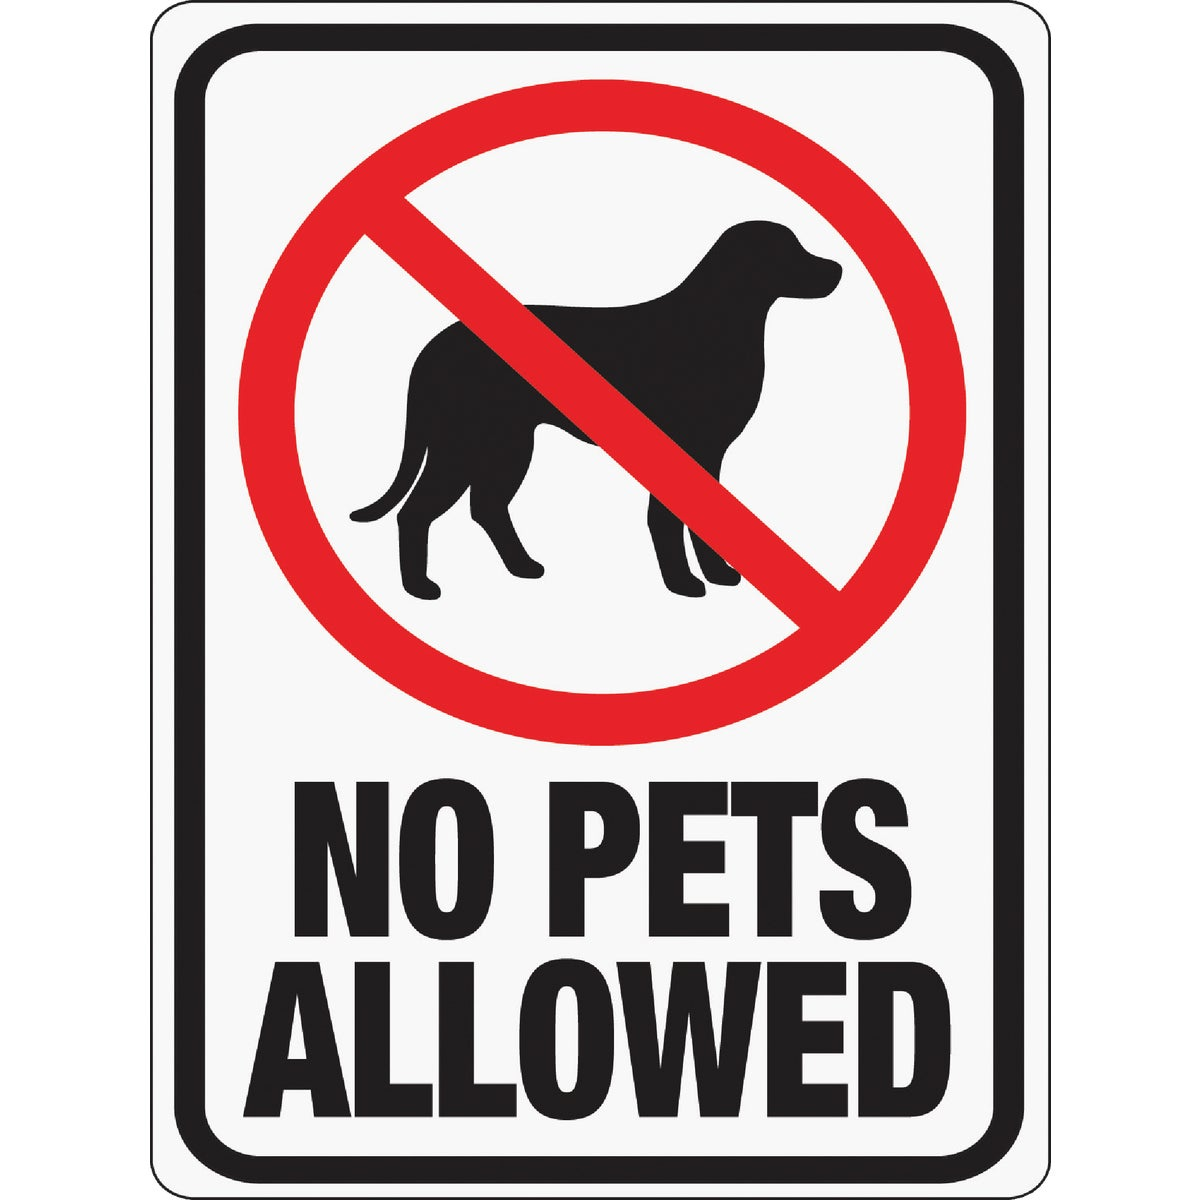 NO PETS ALLOWED SIGN - 20616 by Hy Ko Prods Co